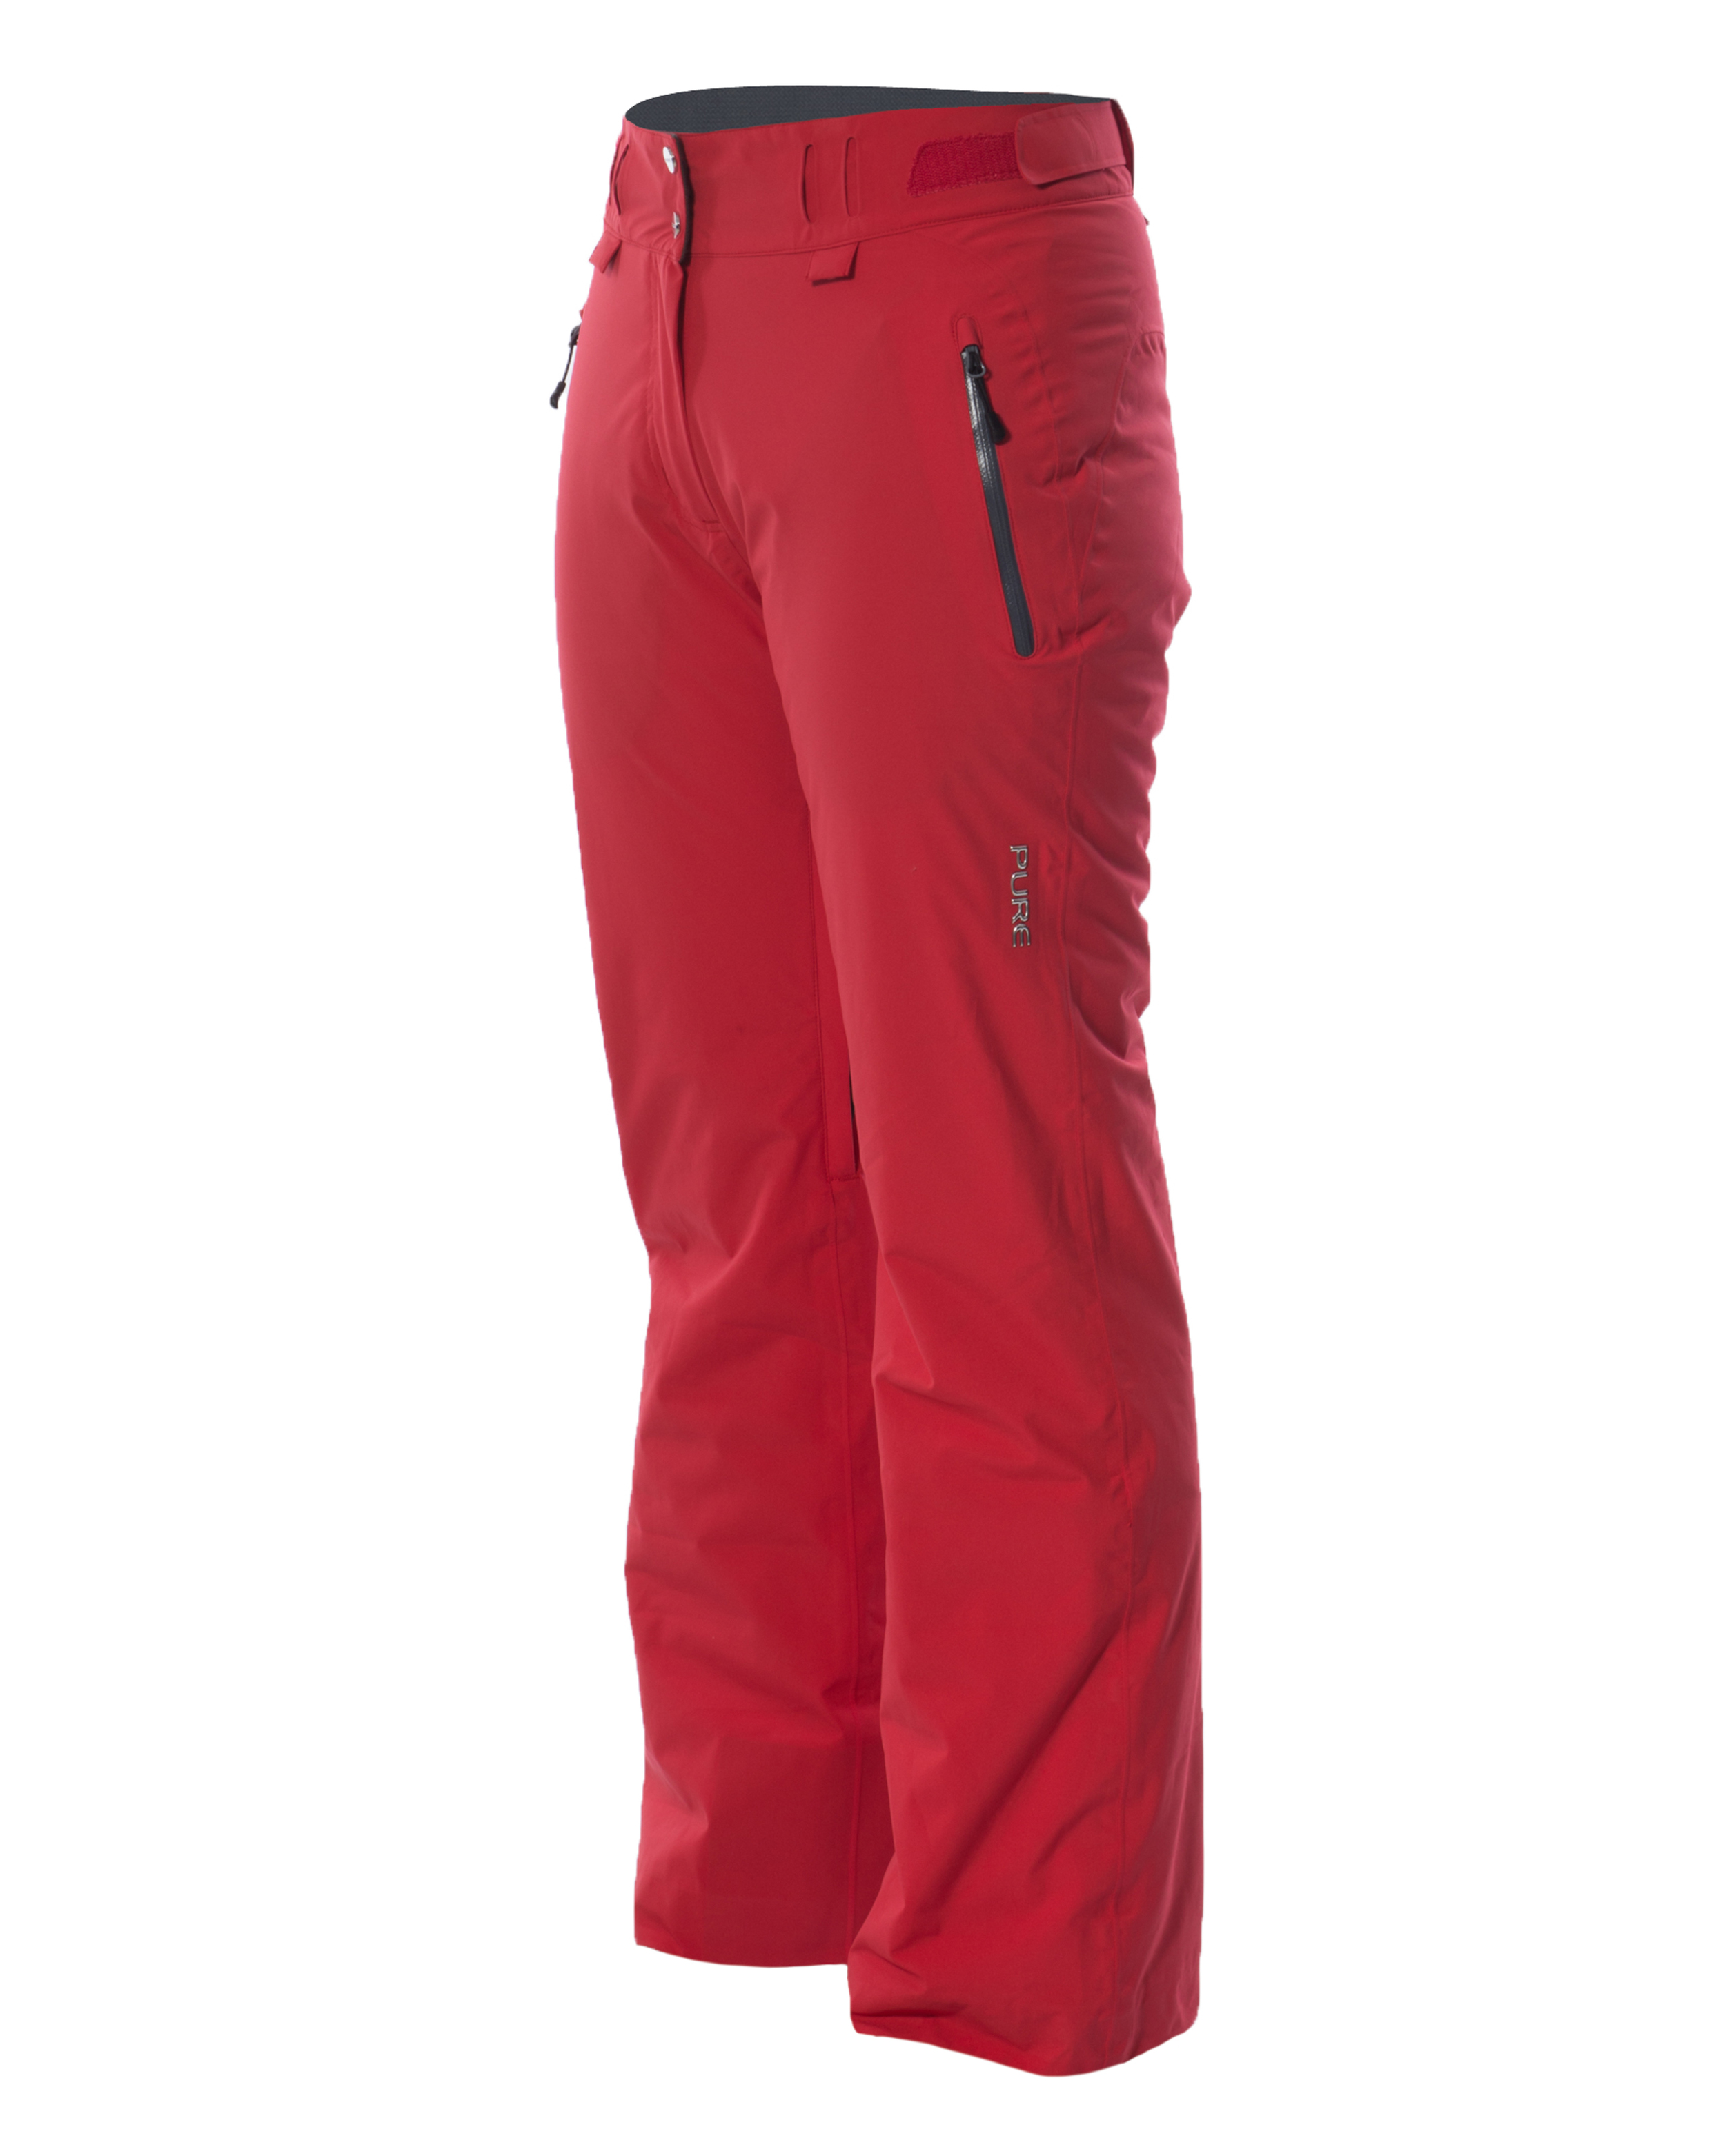 Remarkables Women's Pure Snow - Red